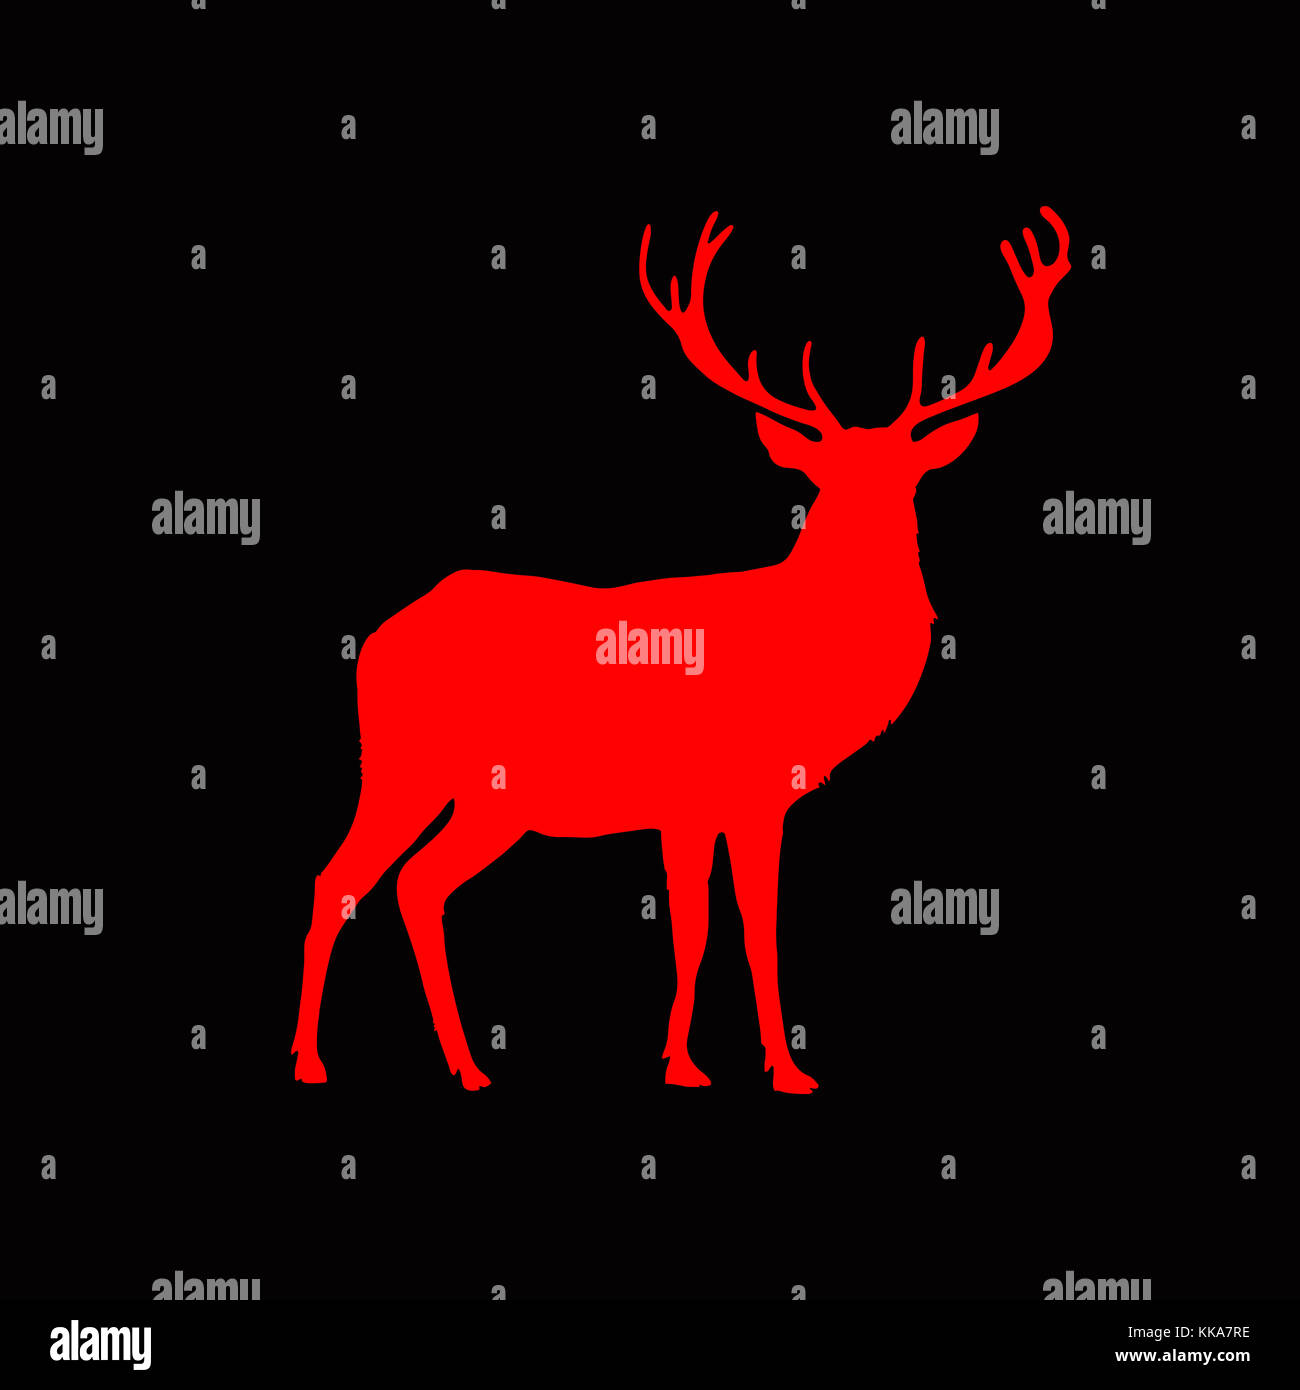 Red silhouette of reindeer with big horns isolated on black background. Vector illustration, icon, clip art, sign, - Stock Image